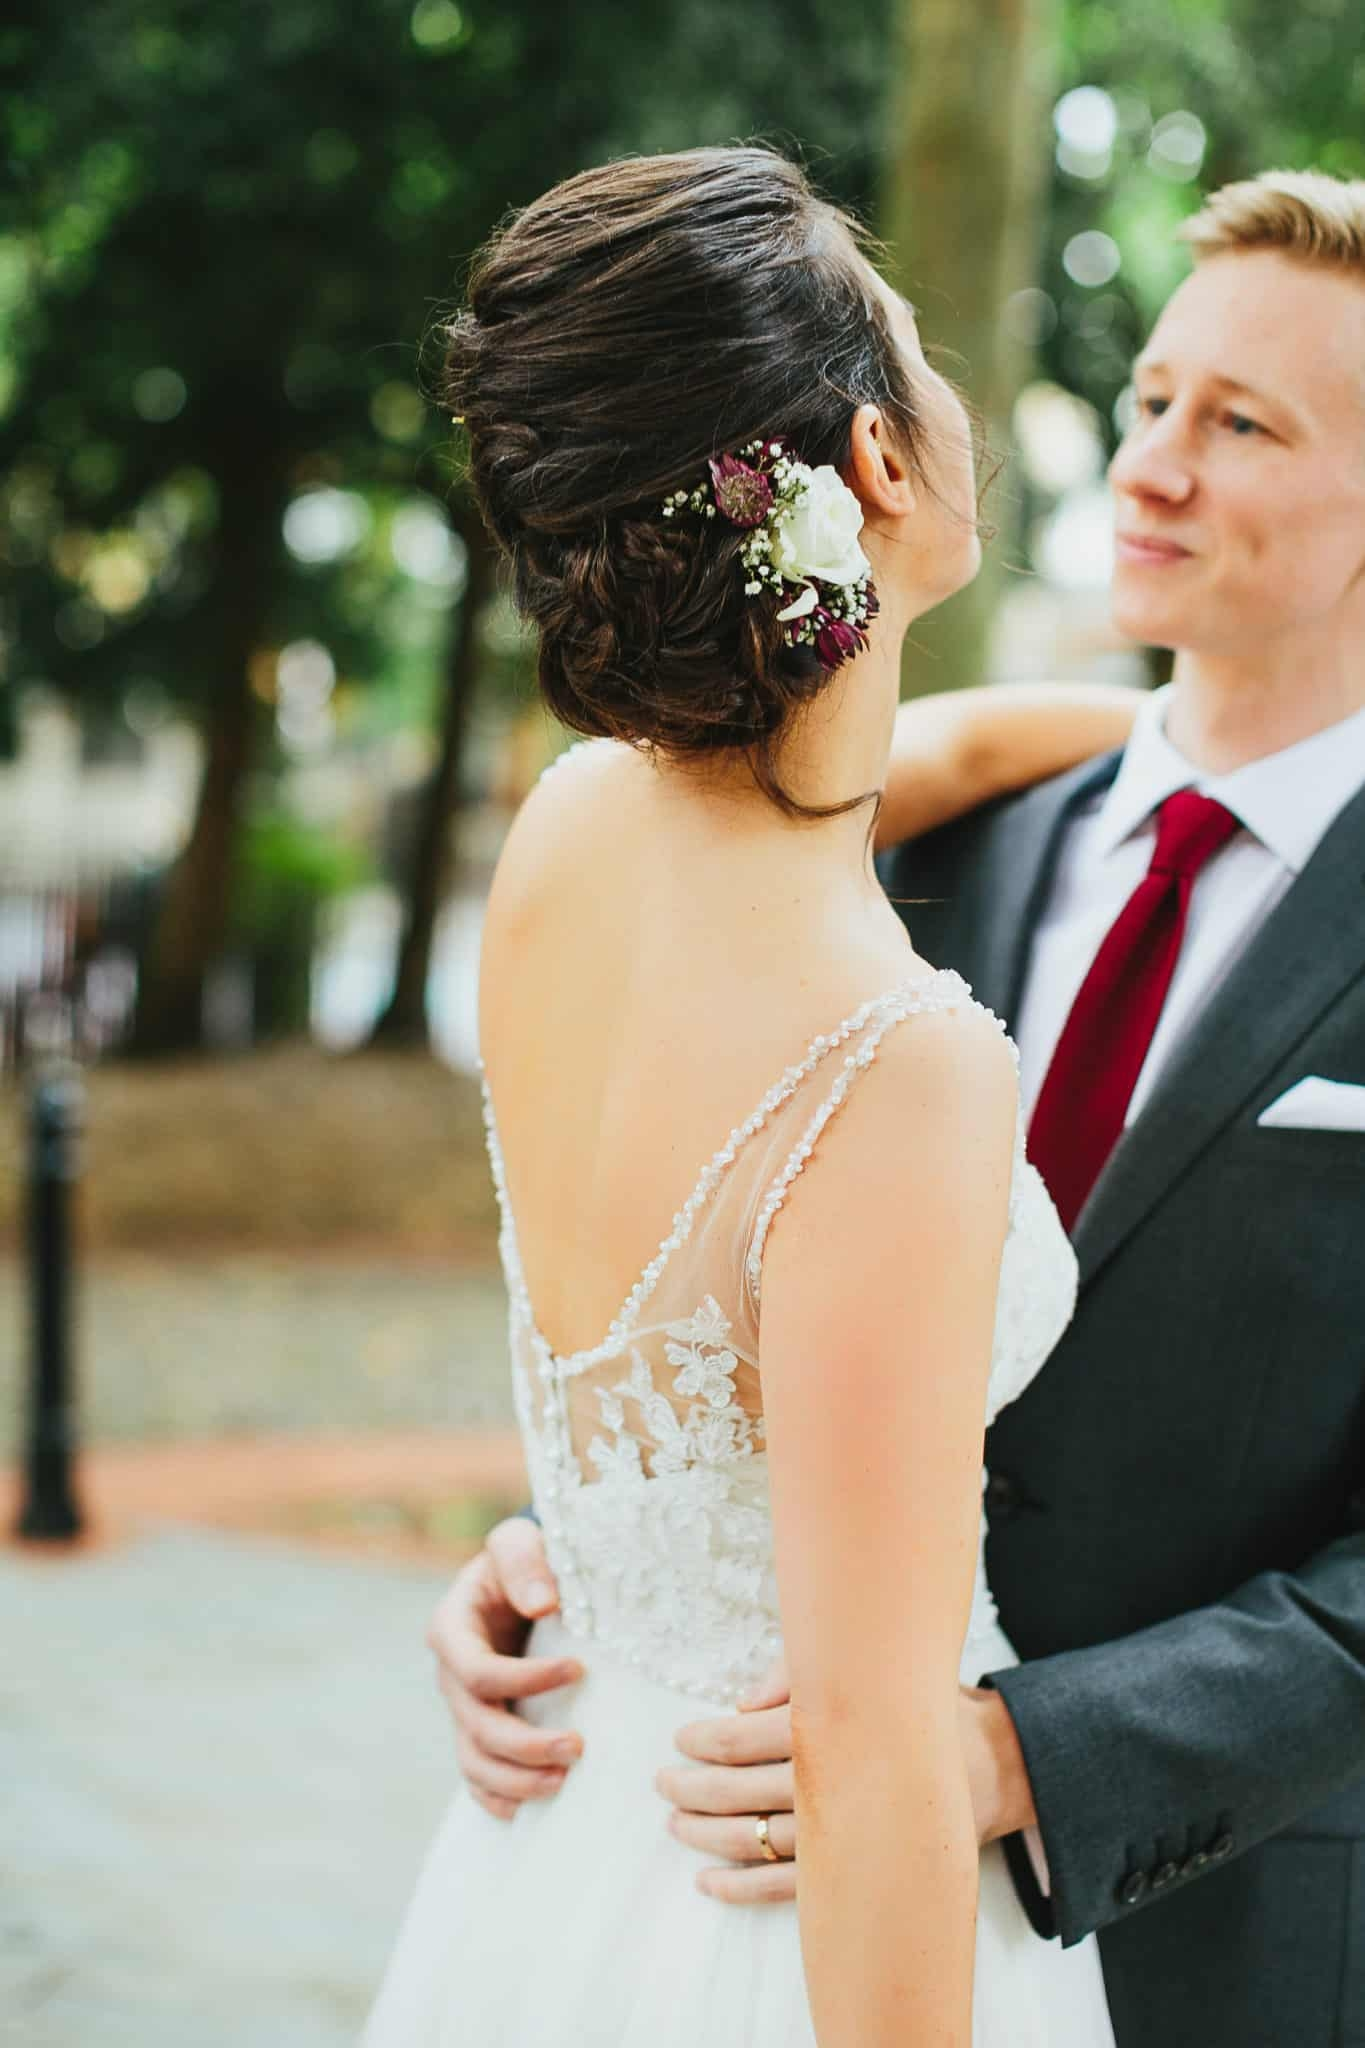 bride with updo and fresh flower accessory embracing groom